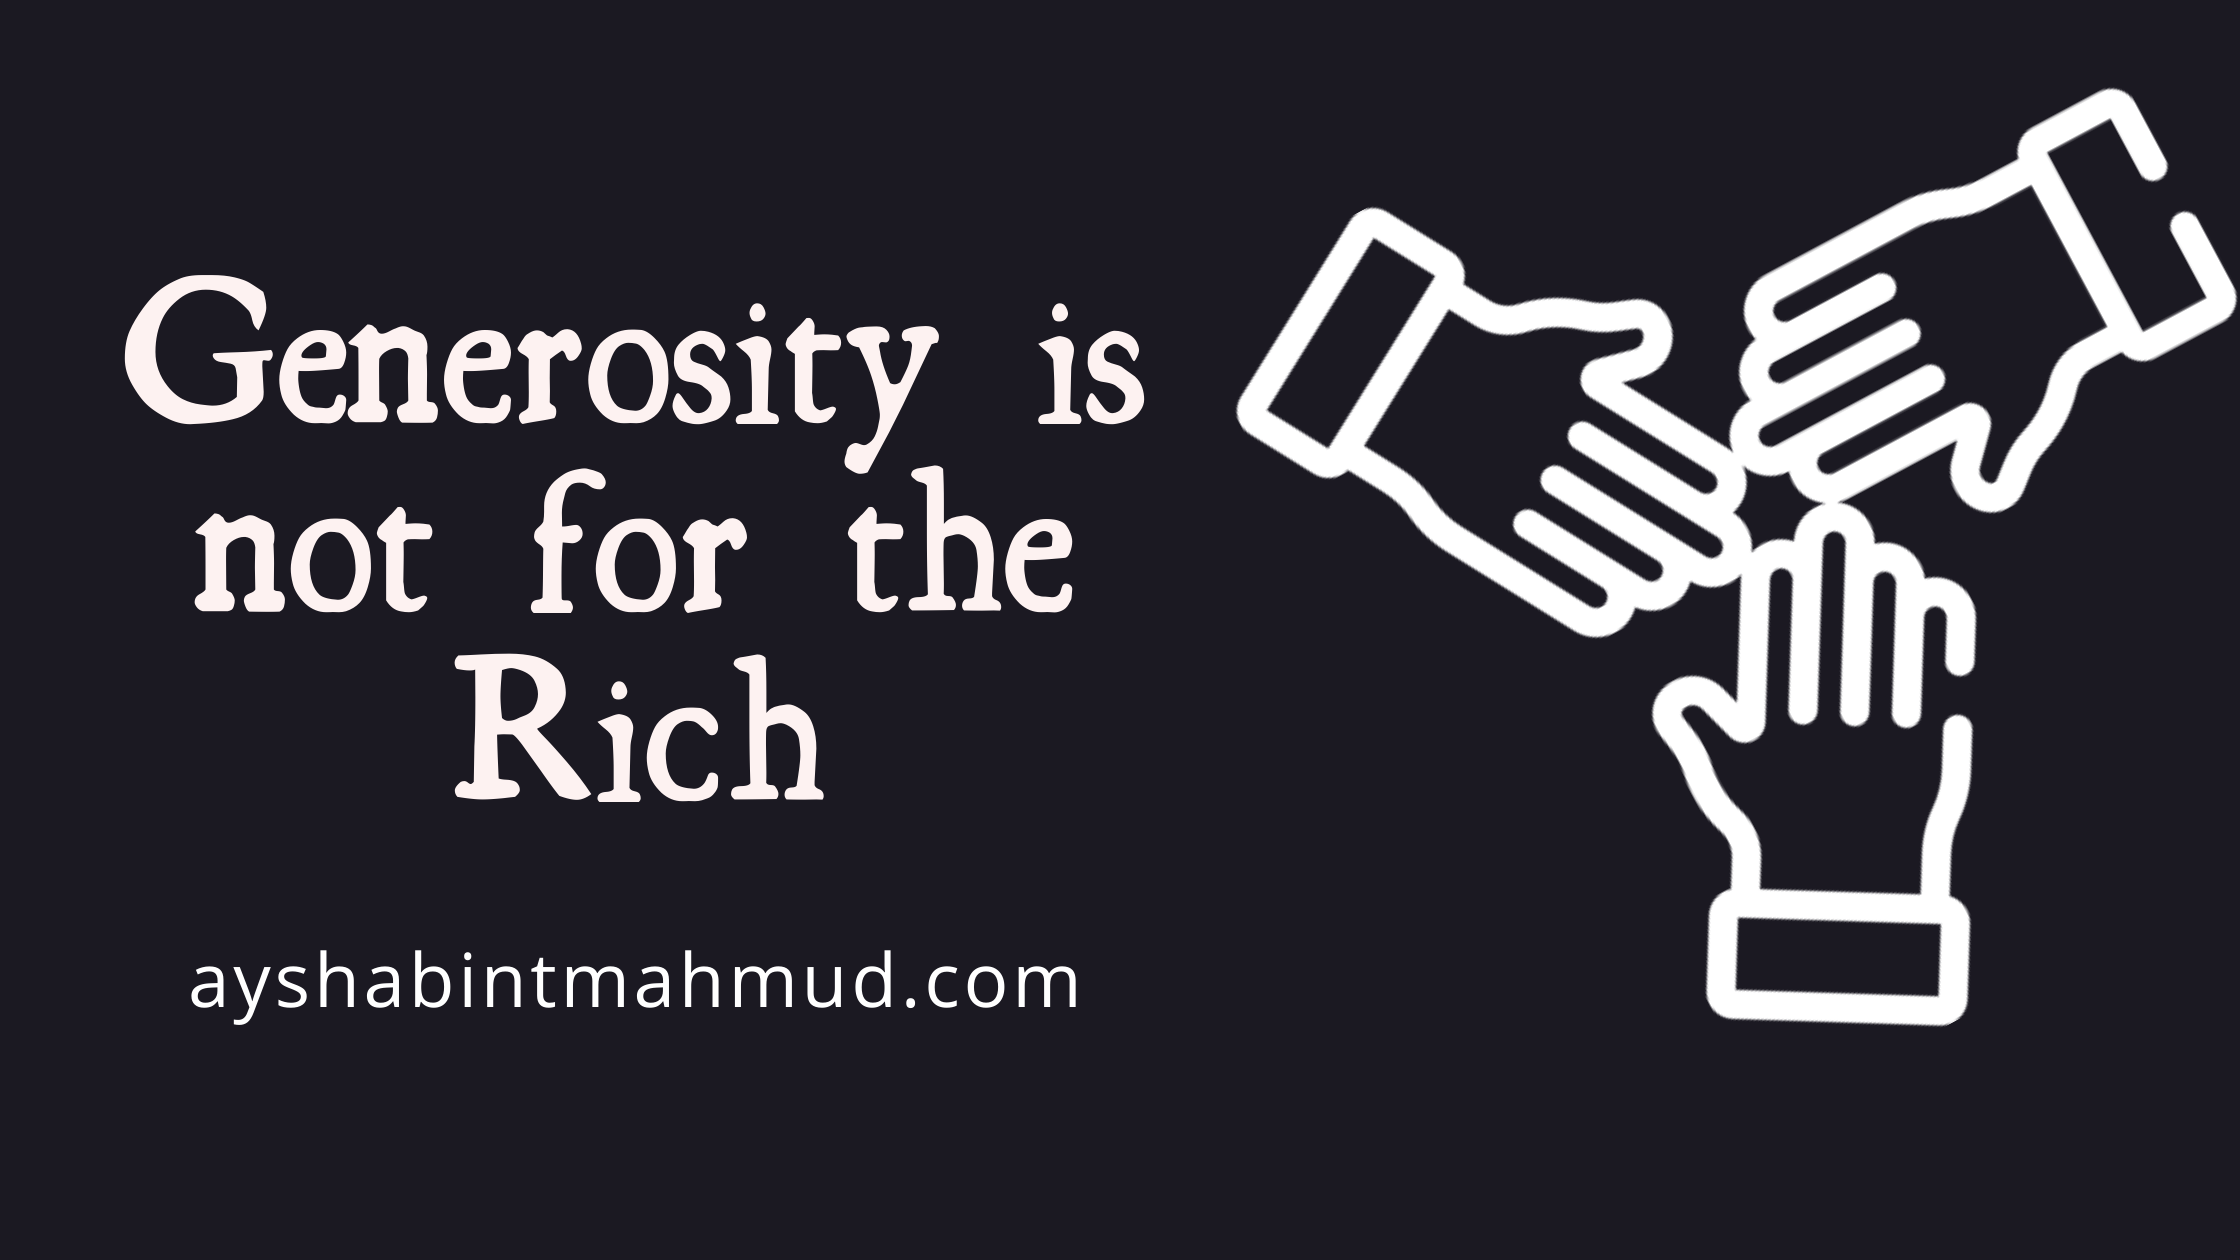 Generosity not for the Rich